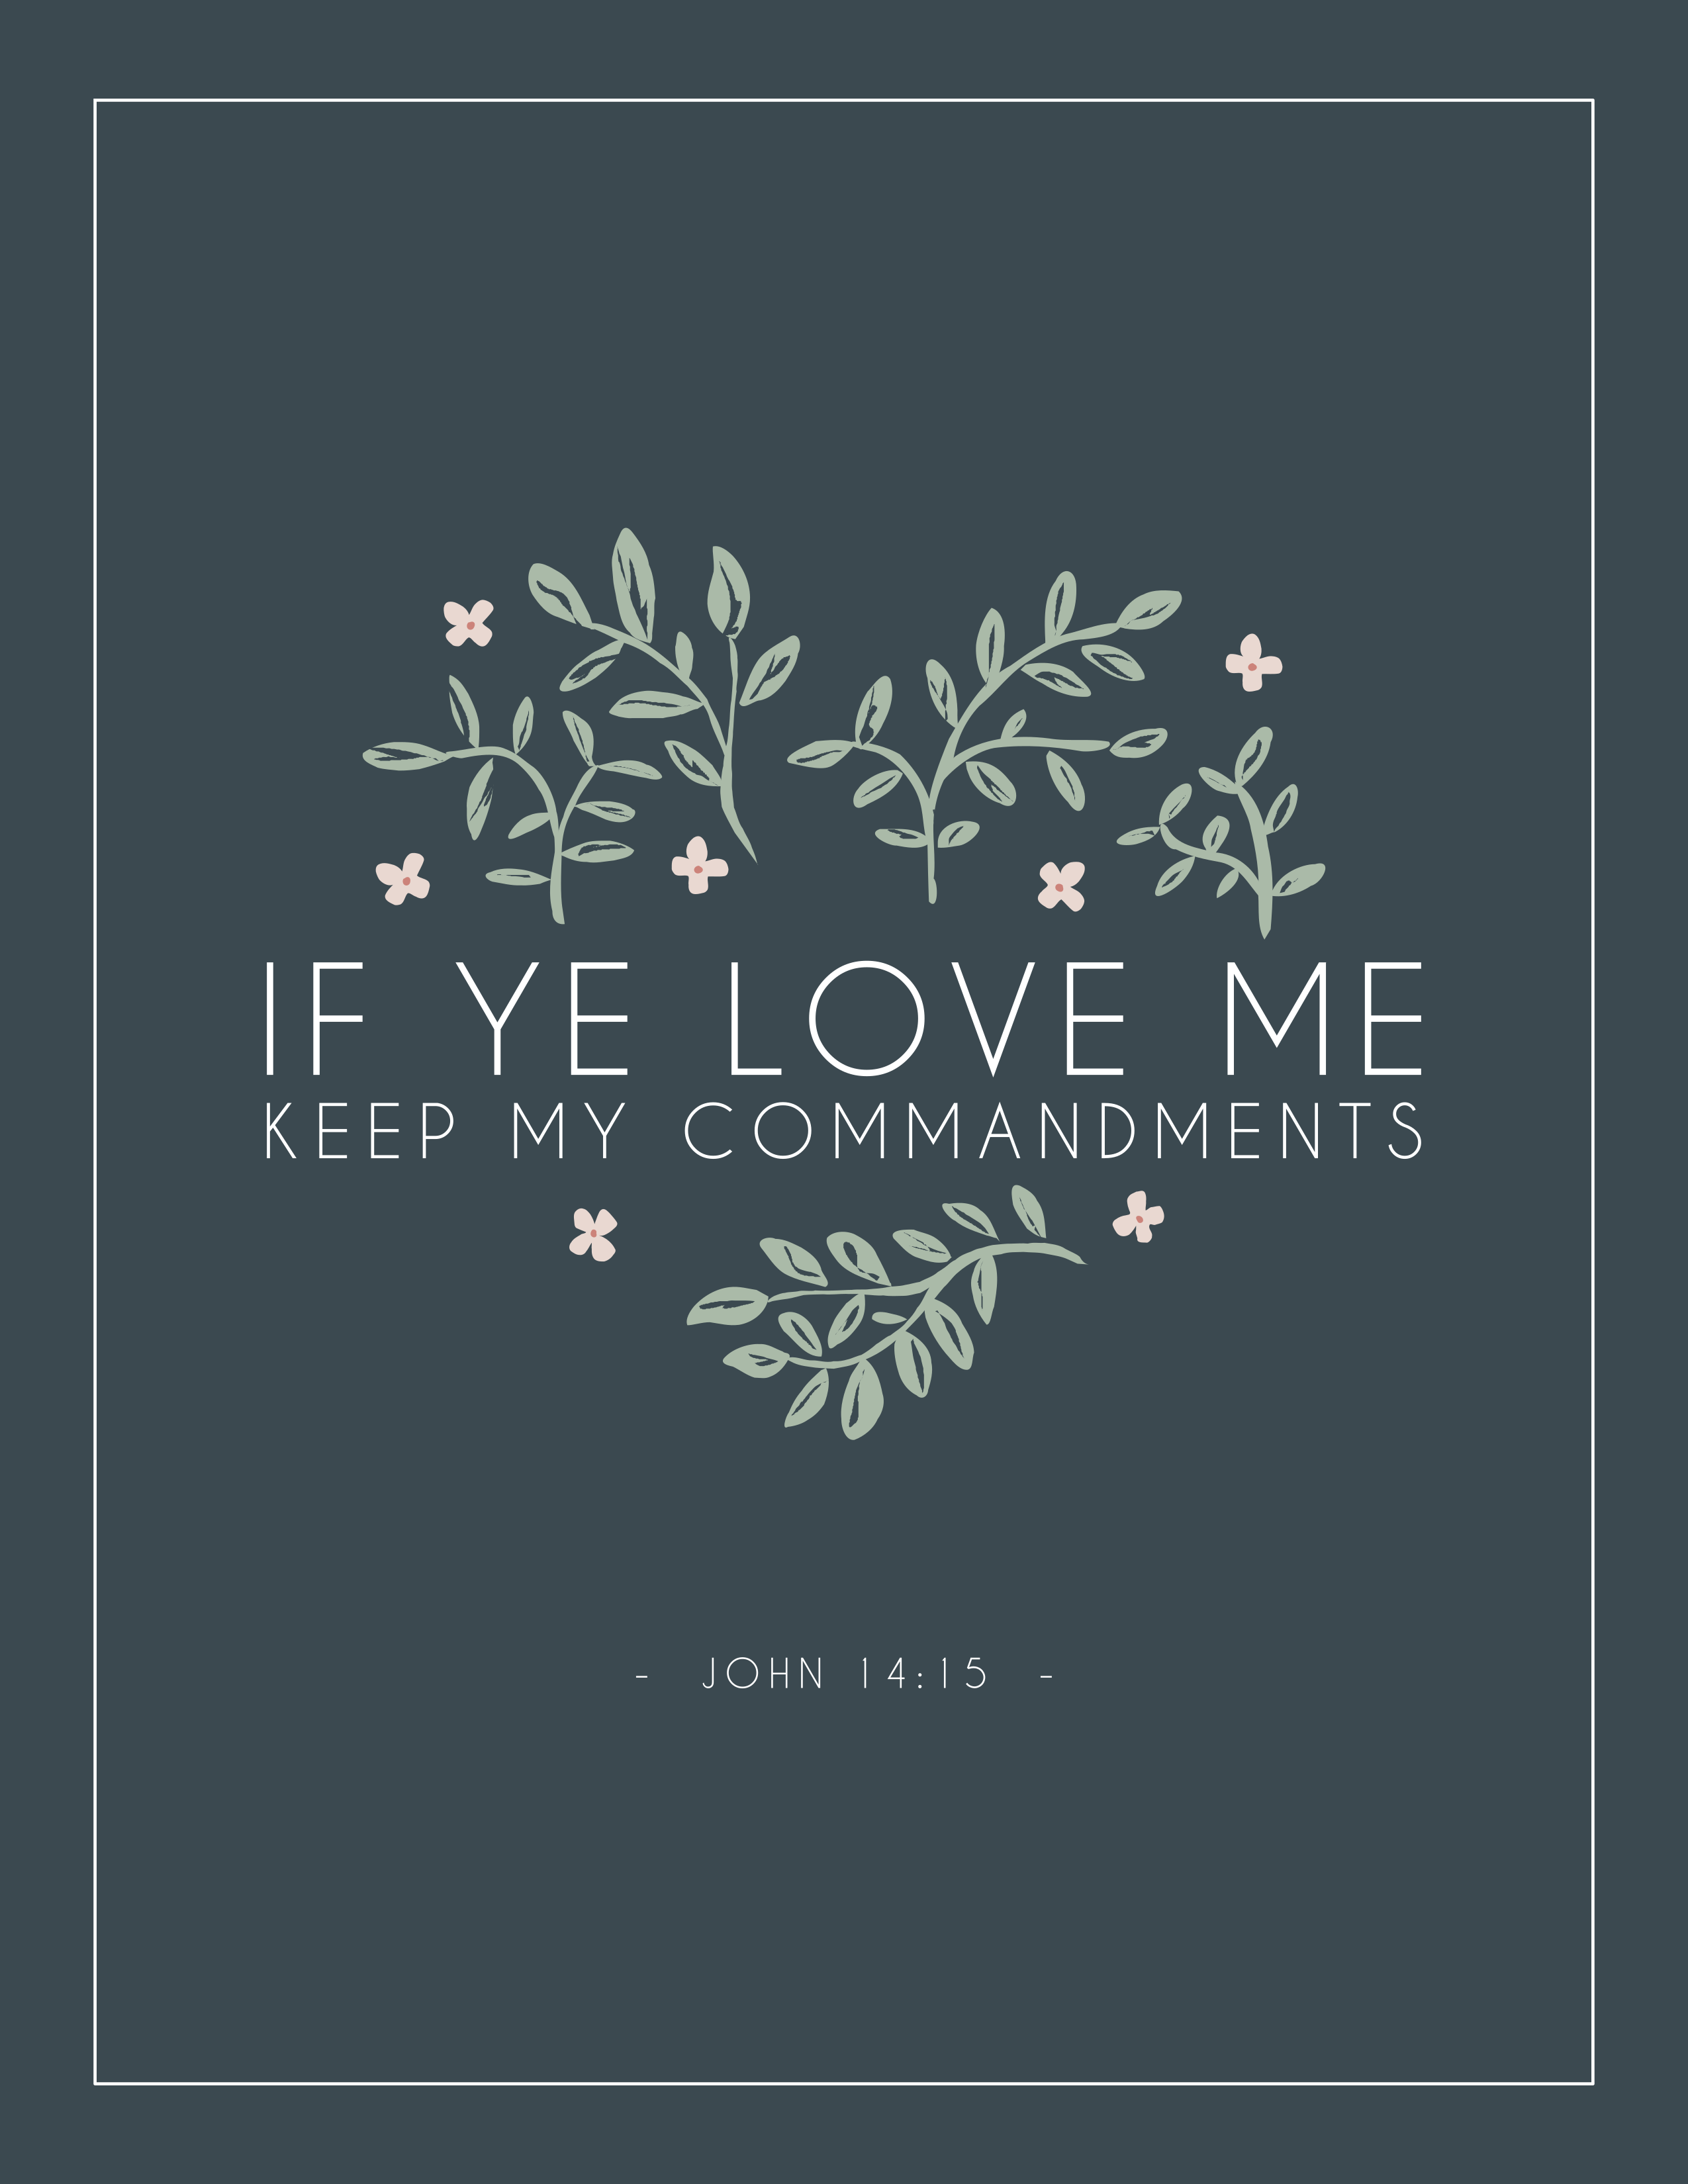 Free Lds Mutual Theme Prints Bookmarks And Handouts If Ye Love Me Keep My Commandments